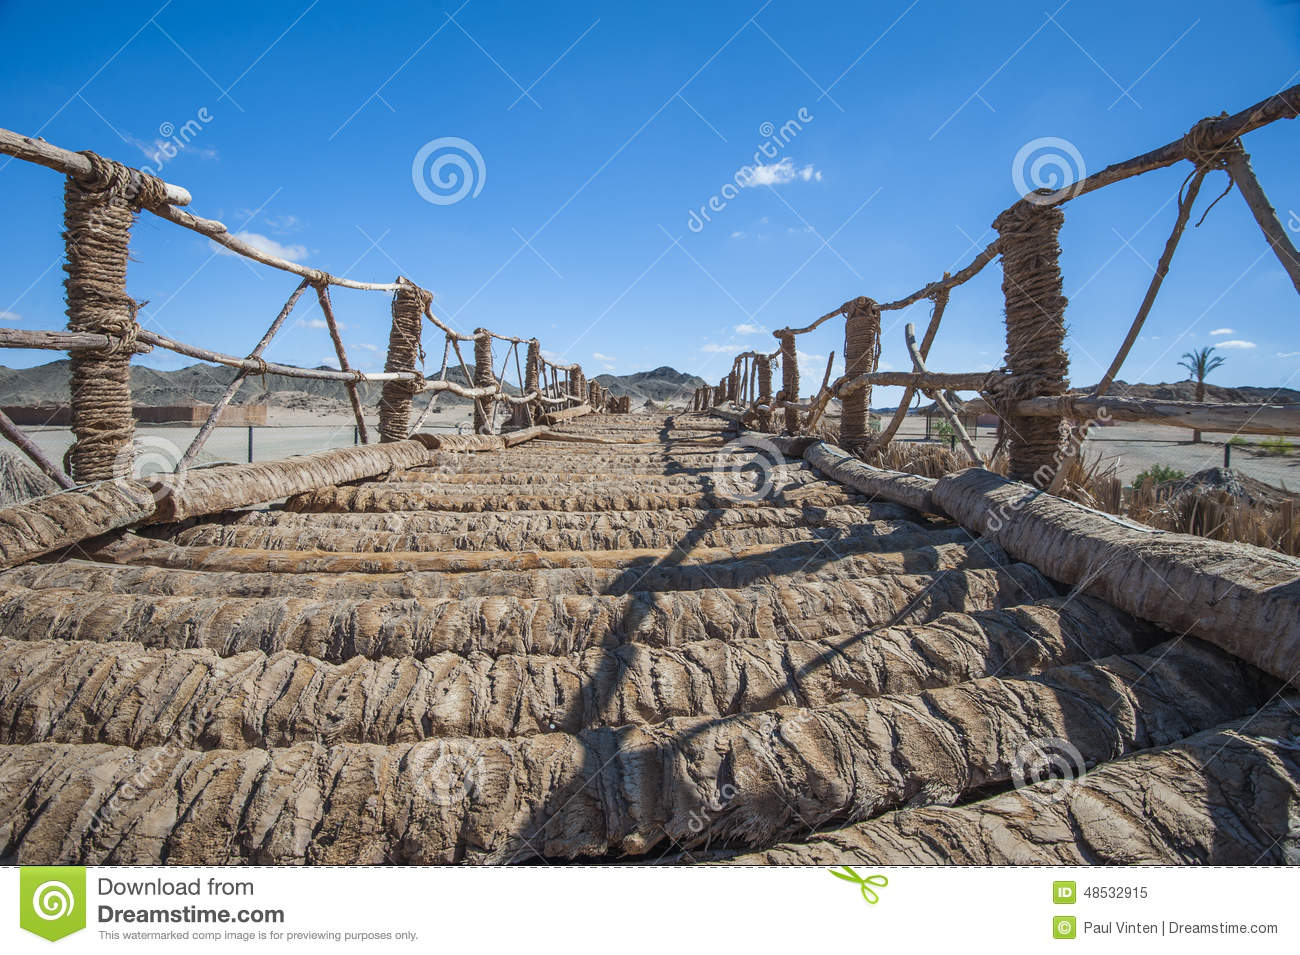 wooden-rope-bridge-remote-desert-log-across-landscape-blue-sky-48532915.jpg